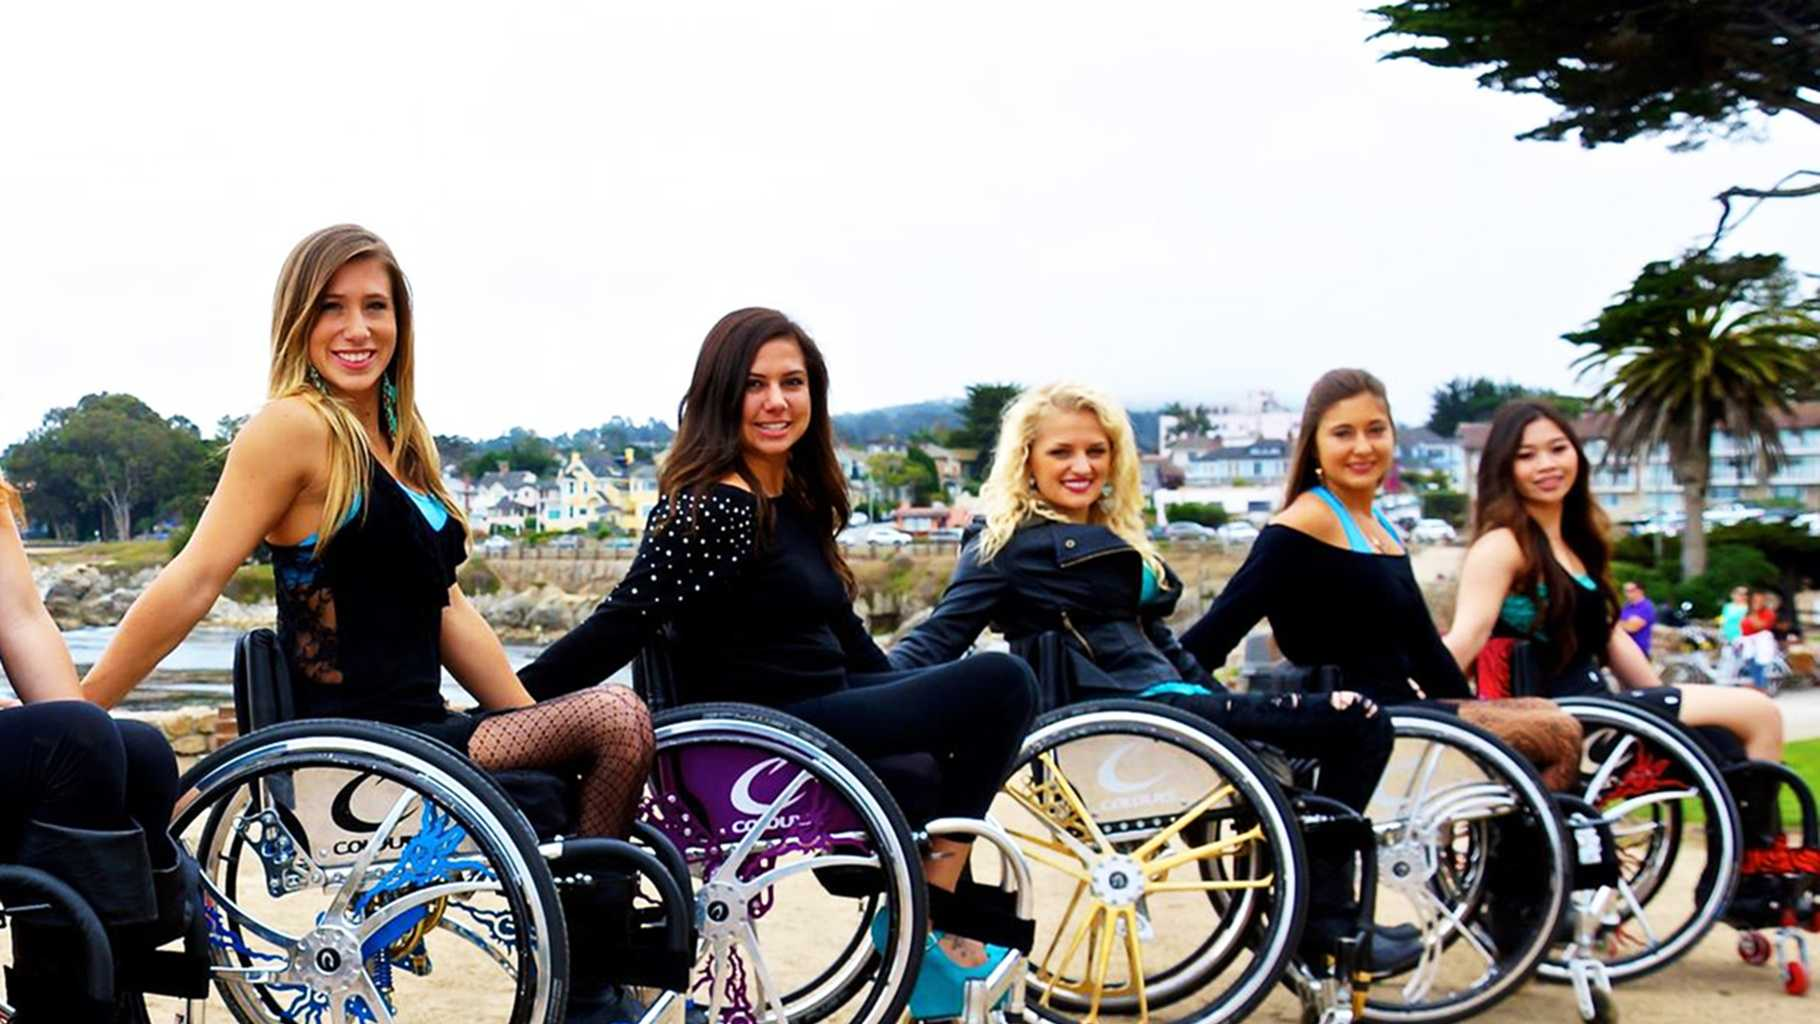 Chelsie Hill, left, smiles with her wheelchair dance team, Walk And Roll Dance Team.